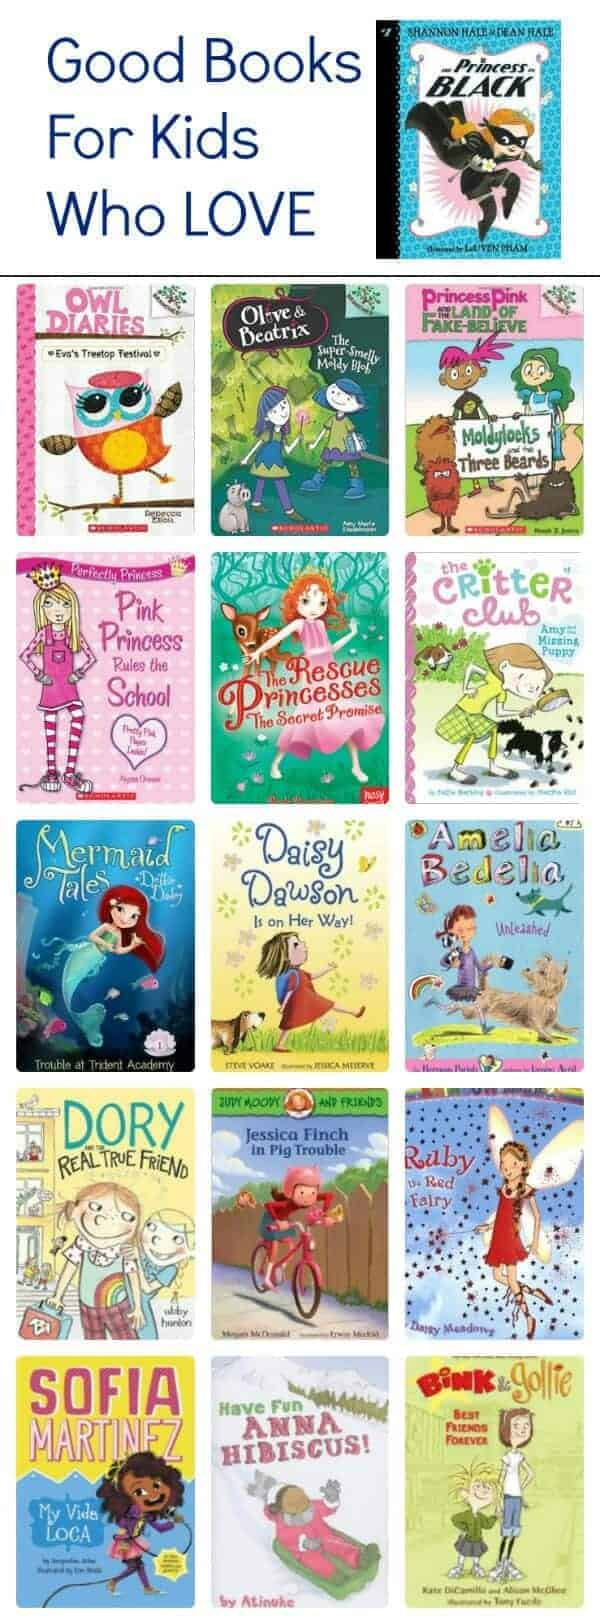 good books for kids who love The Princess in Black